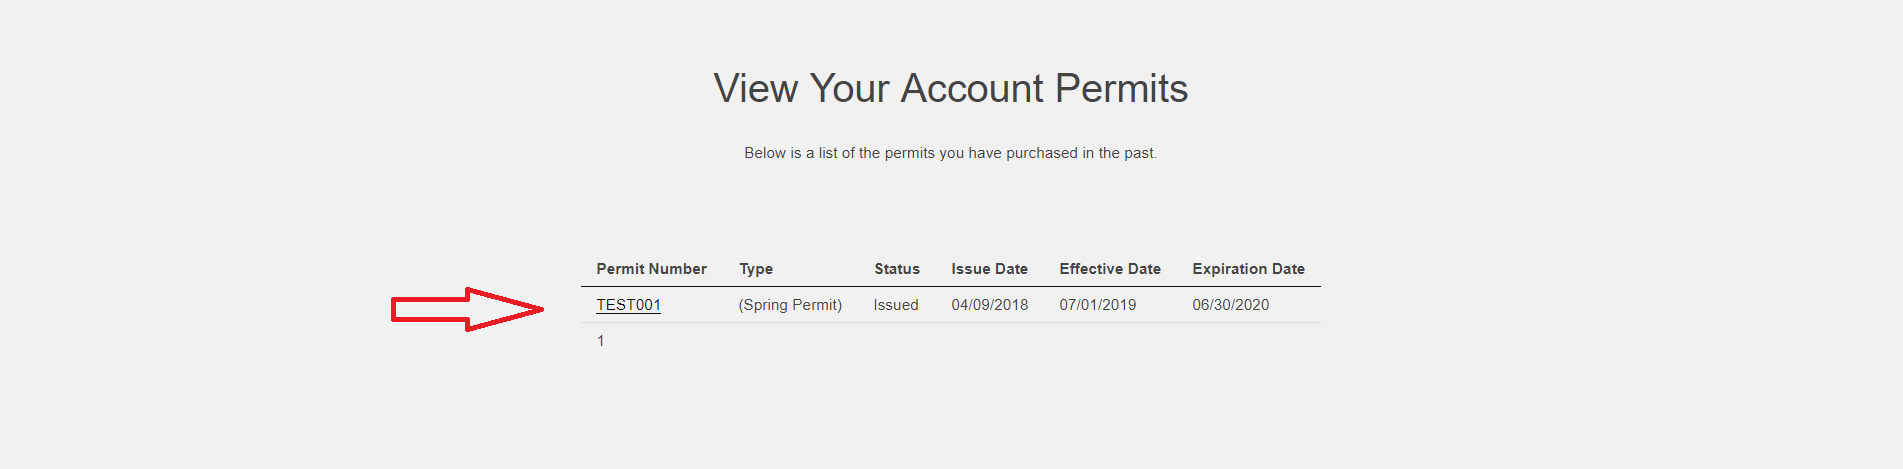 view your permit detail